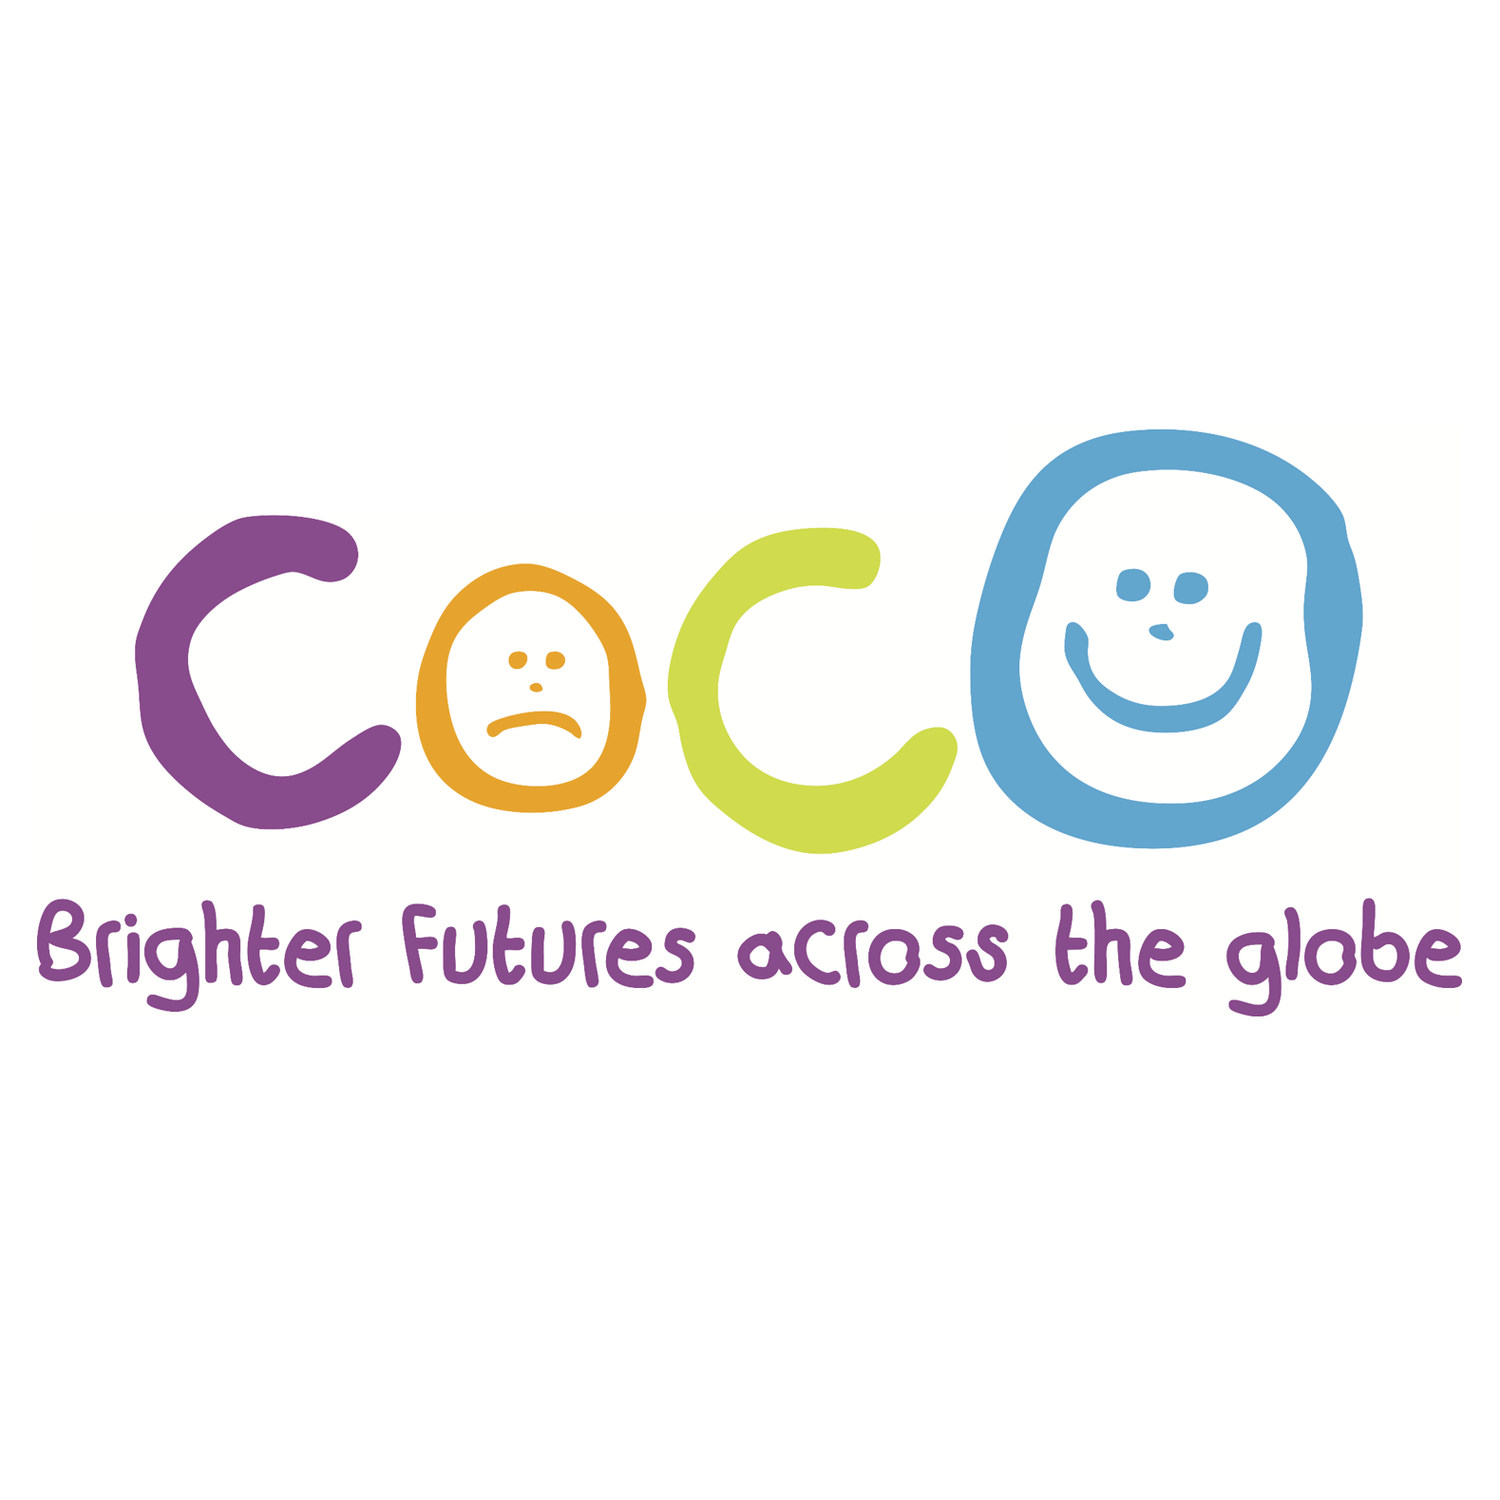 Coco  provide sustainable sources of quality education to children living in poor and marginalised communities to break the cycle of poverty. Based in Newcastle, they currently work. in remote communities in remote areas of Kenya, Tanzania and Uganda.